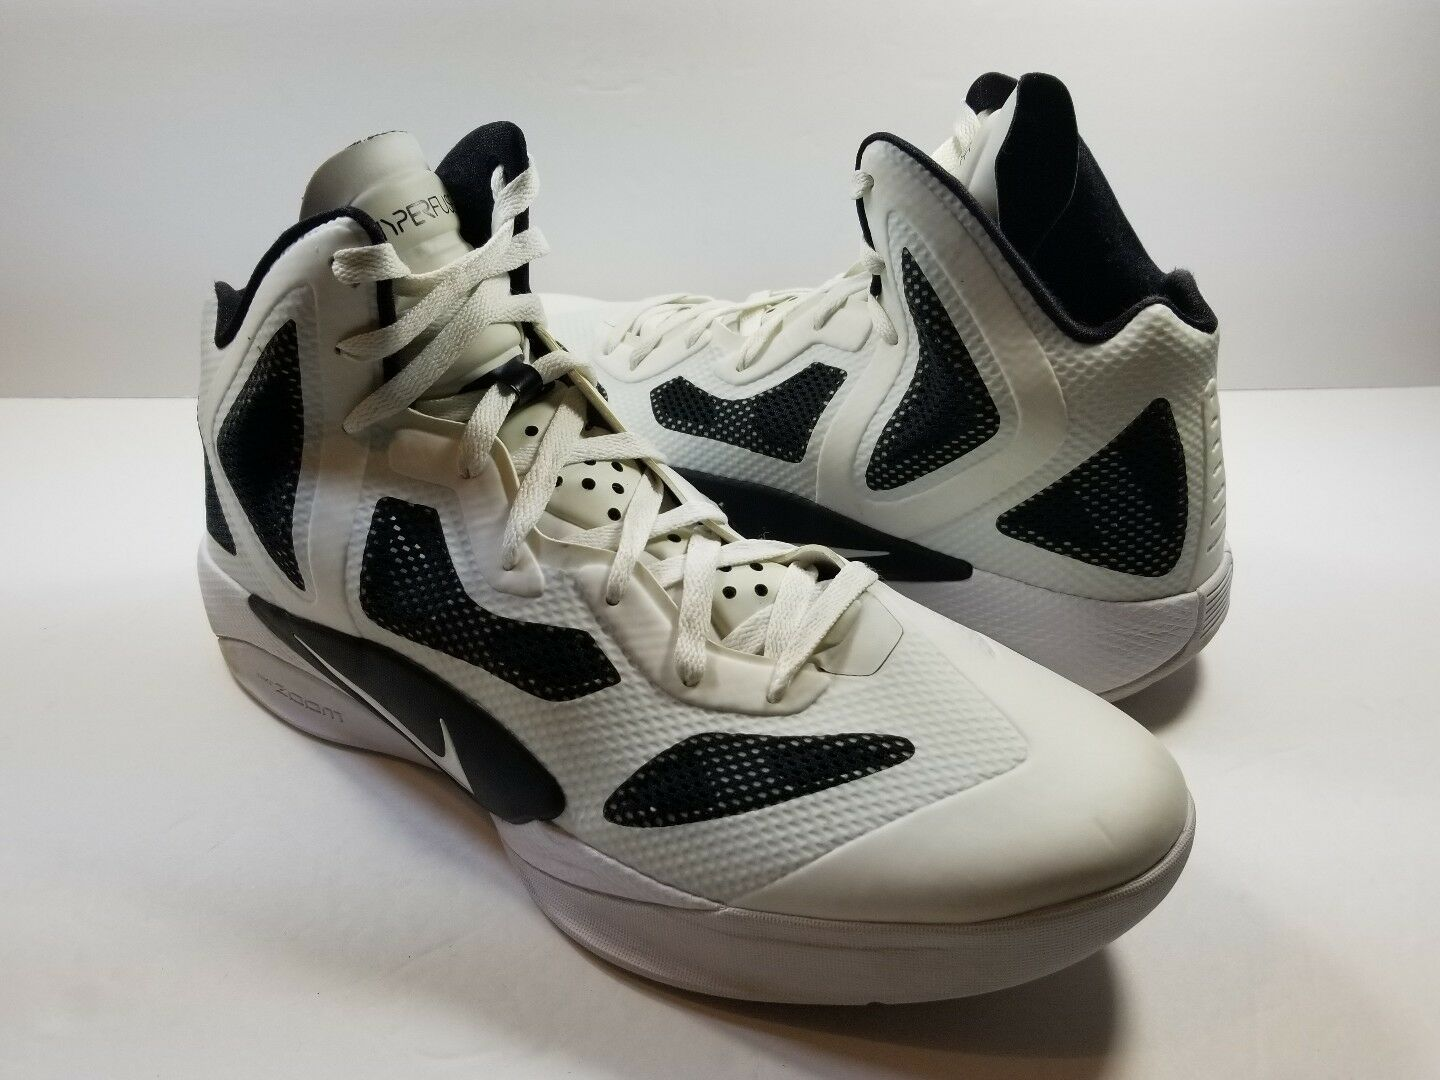 Nike Zoom Hyperfuse 2018 454146-100 White Black Men's Basketball Shoes - Sz 14